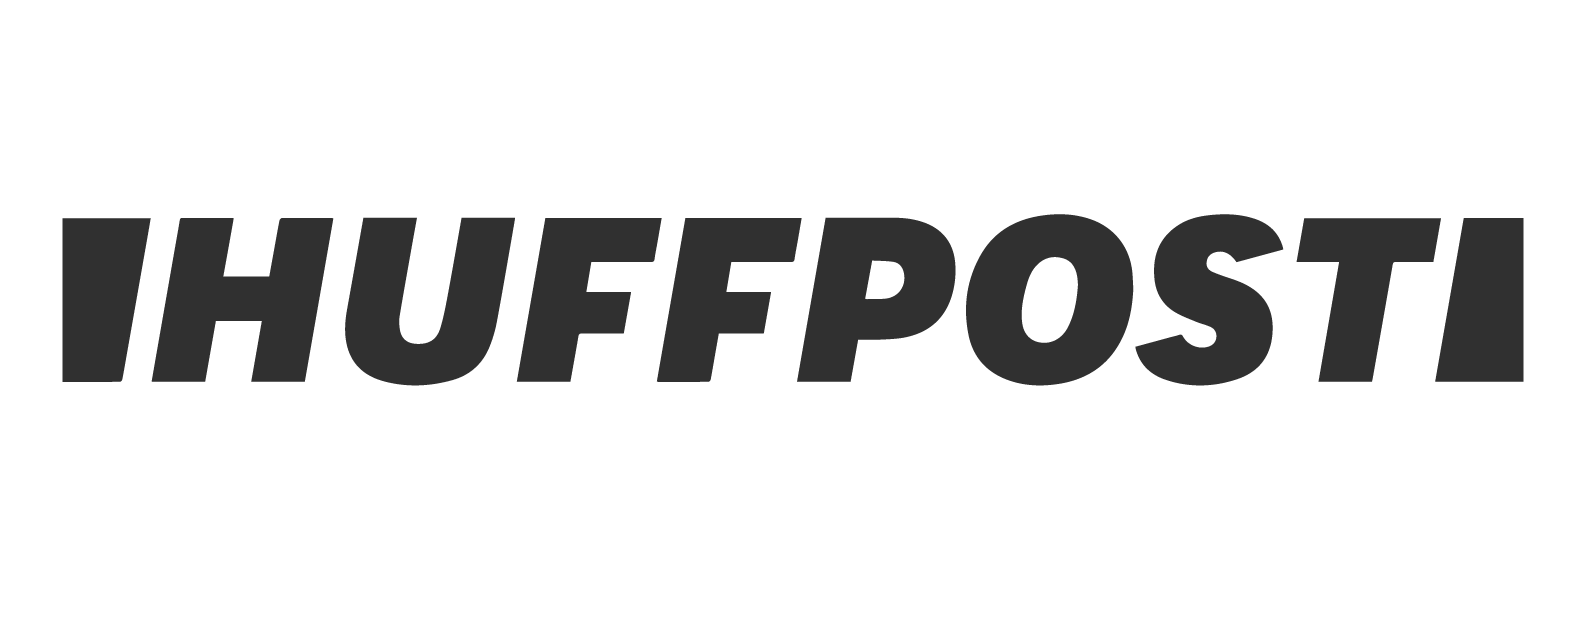 thinner image - huffpost black logo